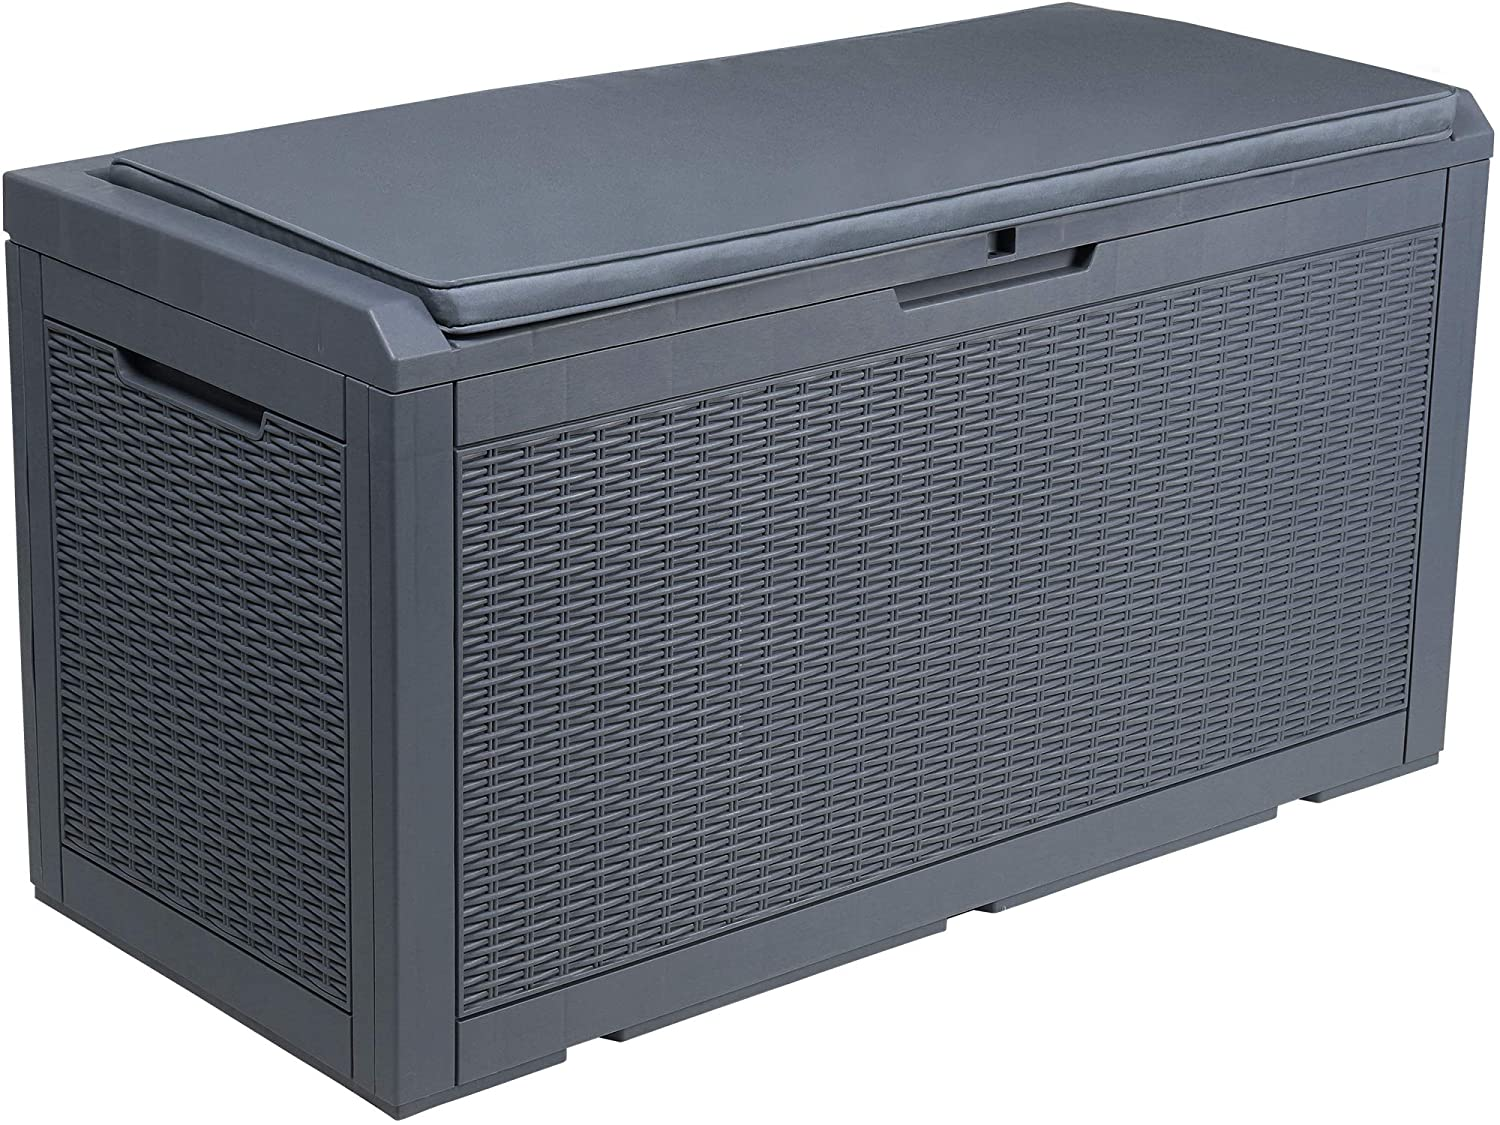 YITAHOME 100 Gallon Large Resin Deck Box Indoor Outdoor Storage with Cushion for Patio Furniture, Outdoor Cushions, Garden Tools and Pool Toys (Dark Grey)